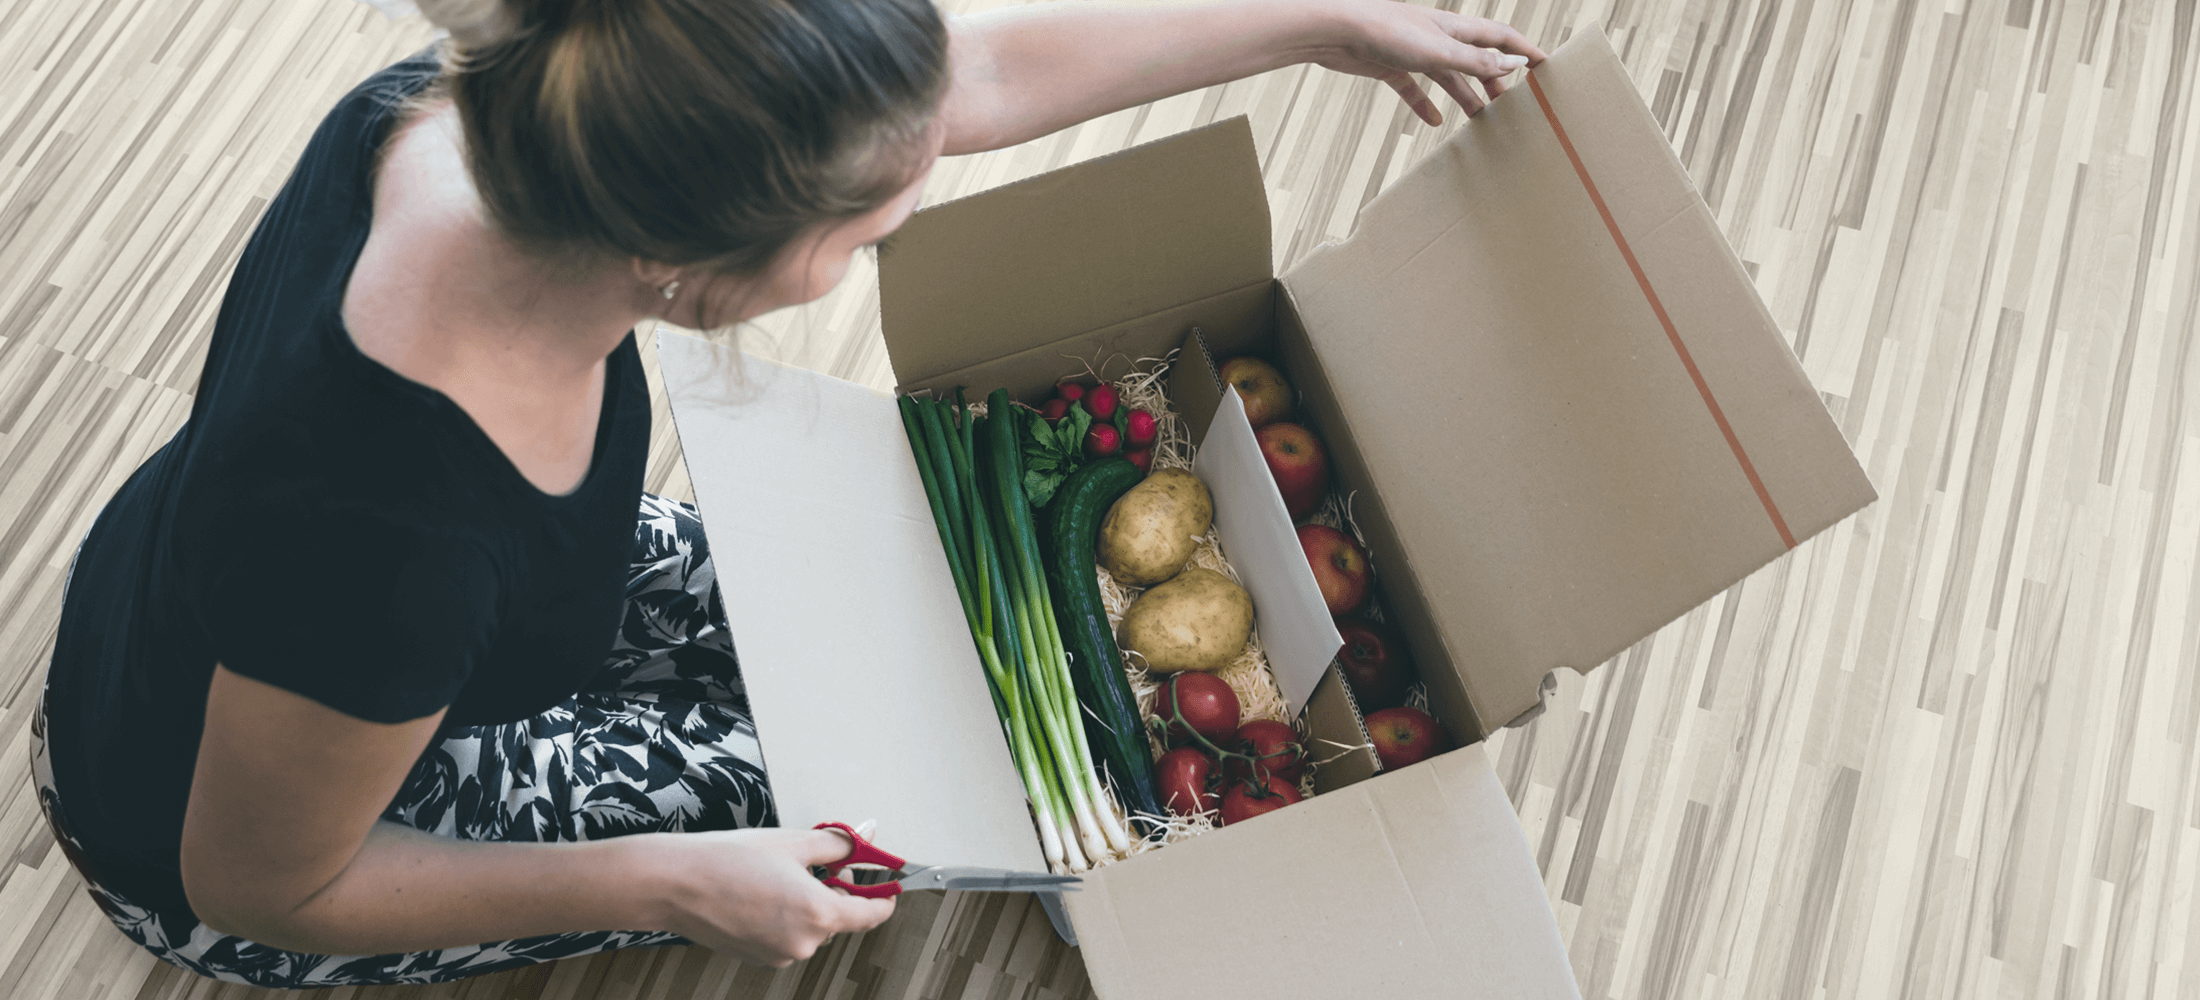 Staying fresh: How UK grocery retailers are innovating with delivery